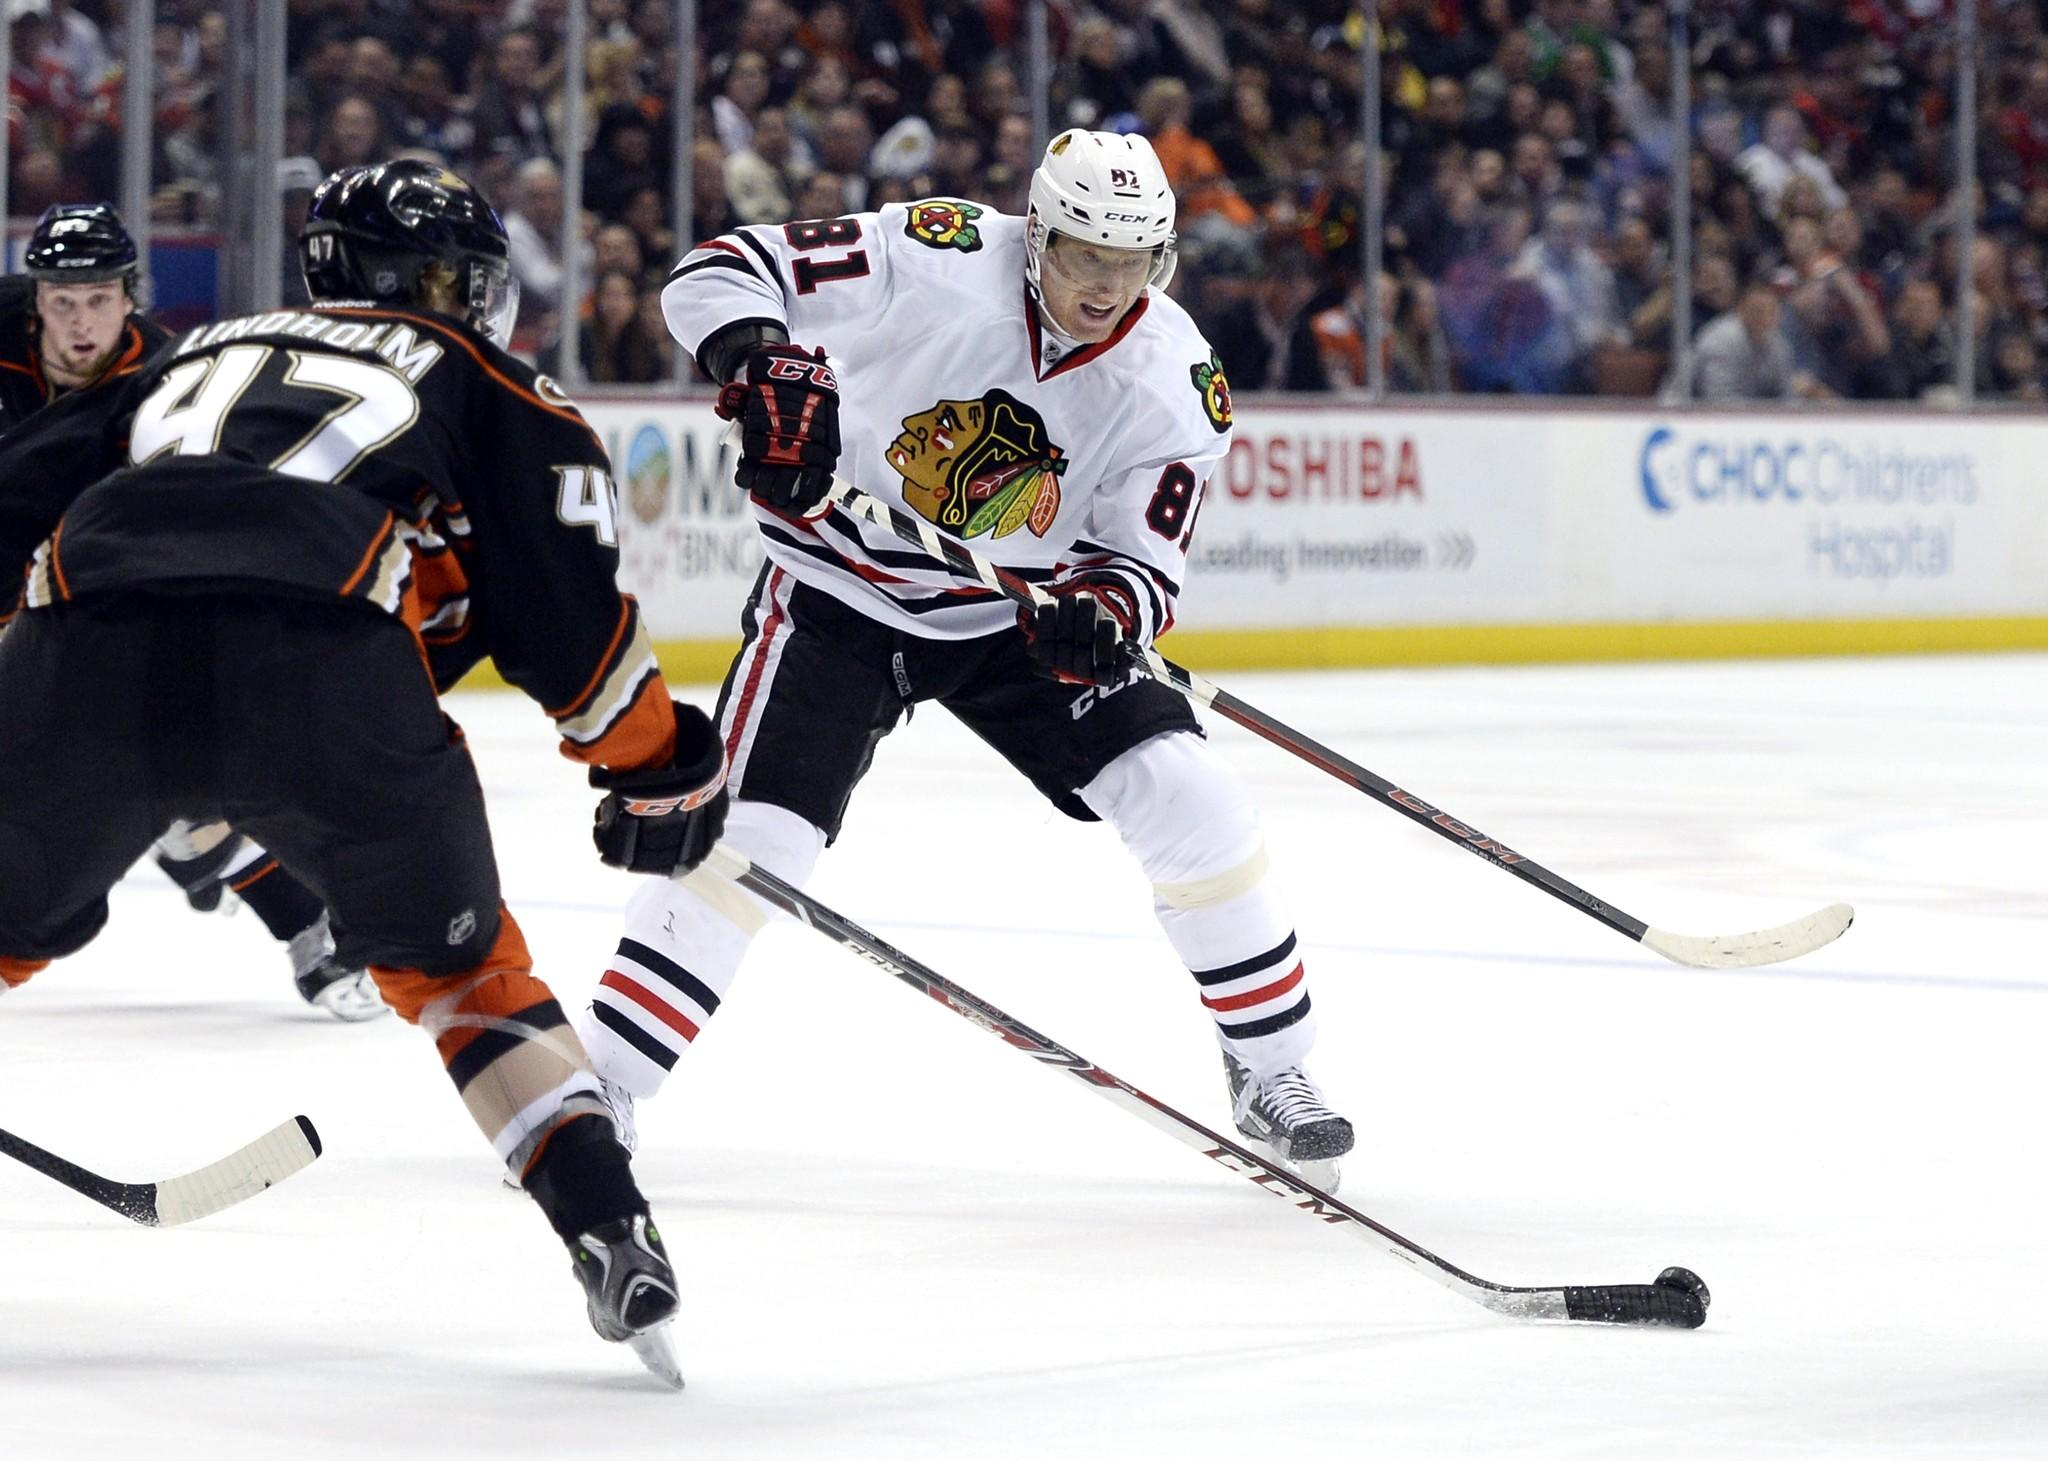 Marian Hossa has his pass blocked by Hampus Lindholm of the Ducks.